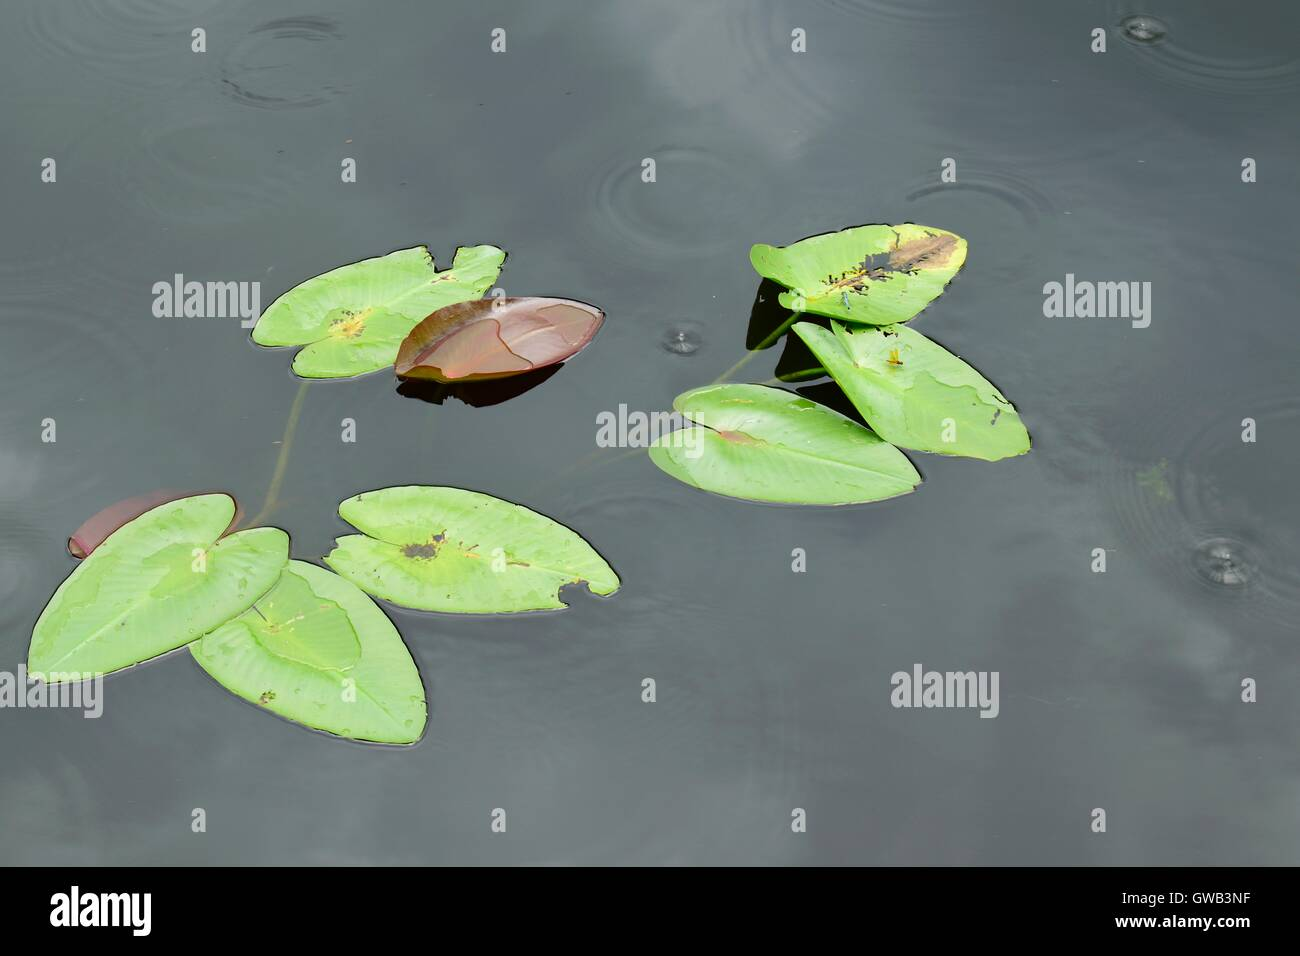 Dragonflies resting on leaves during the rain. - Stock Image